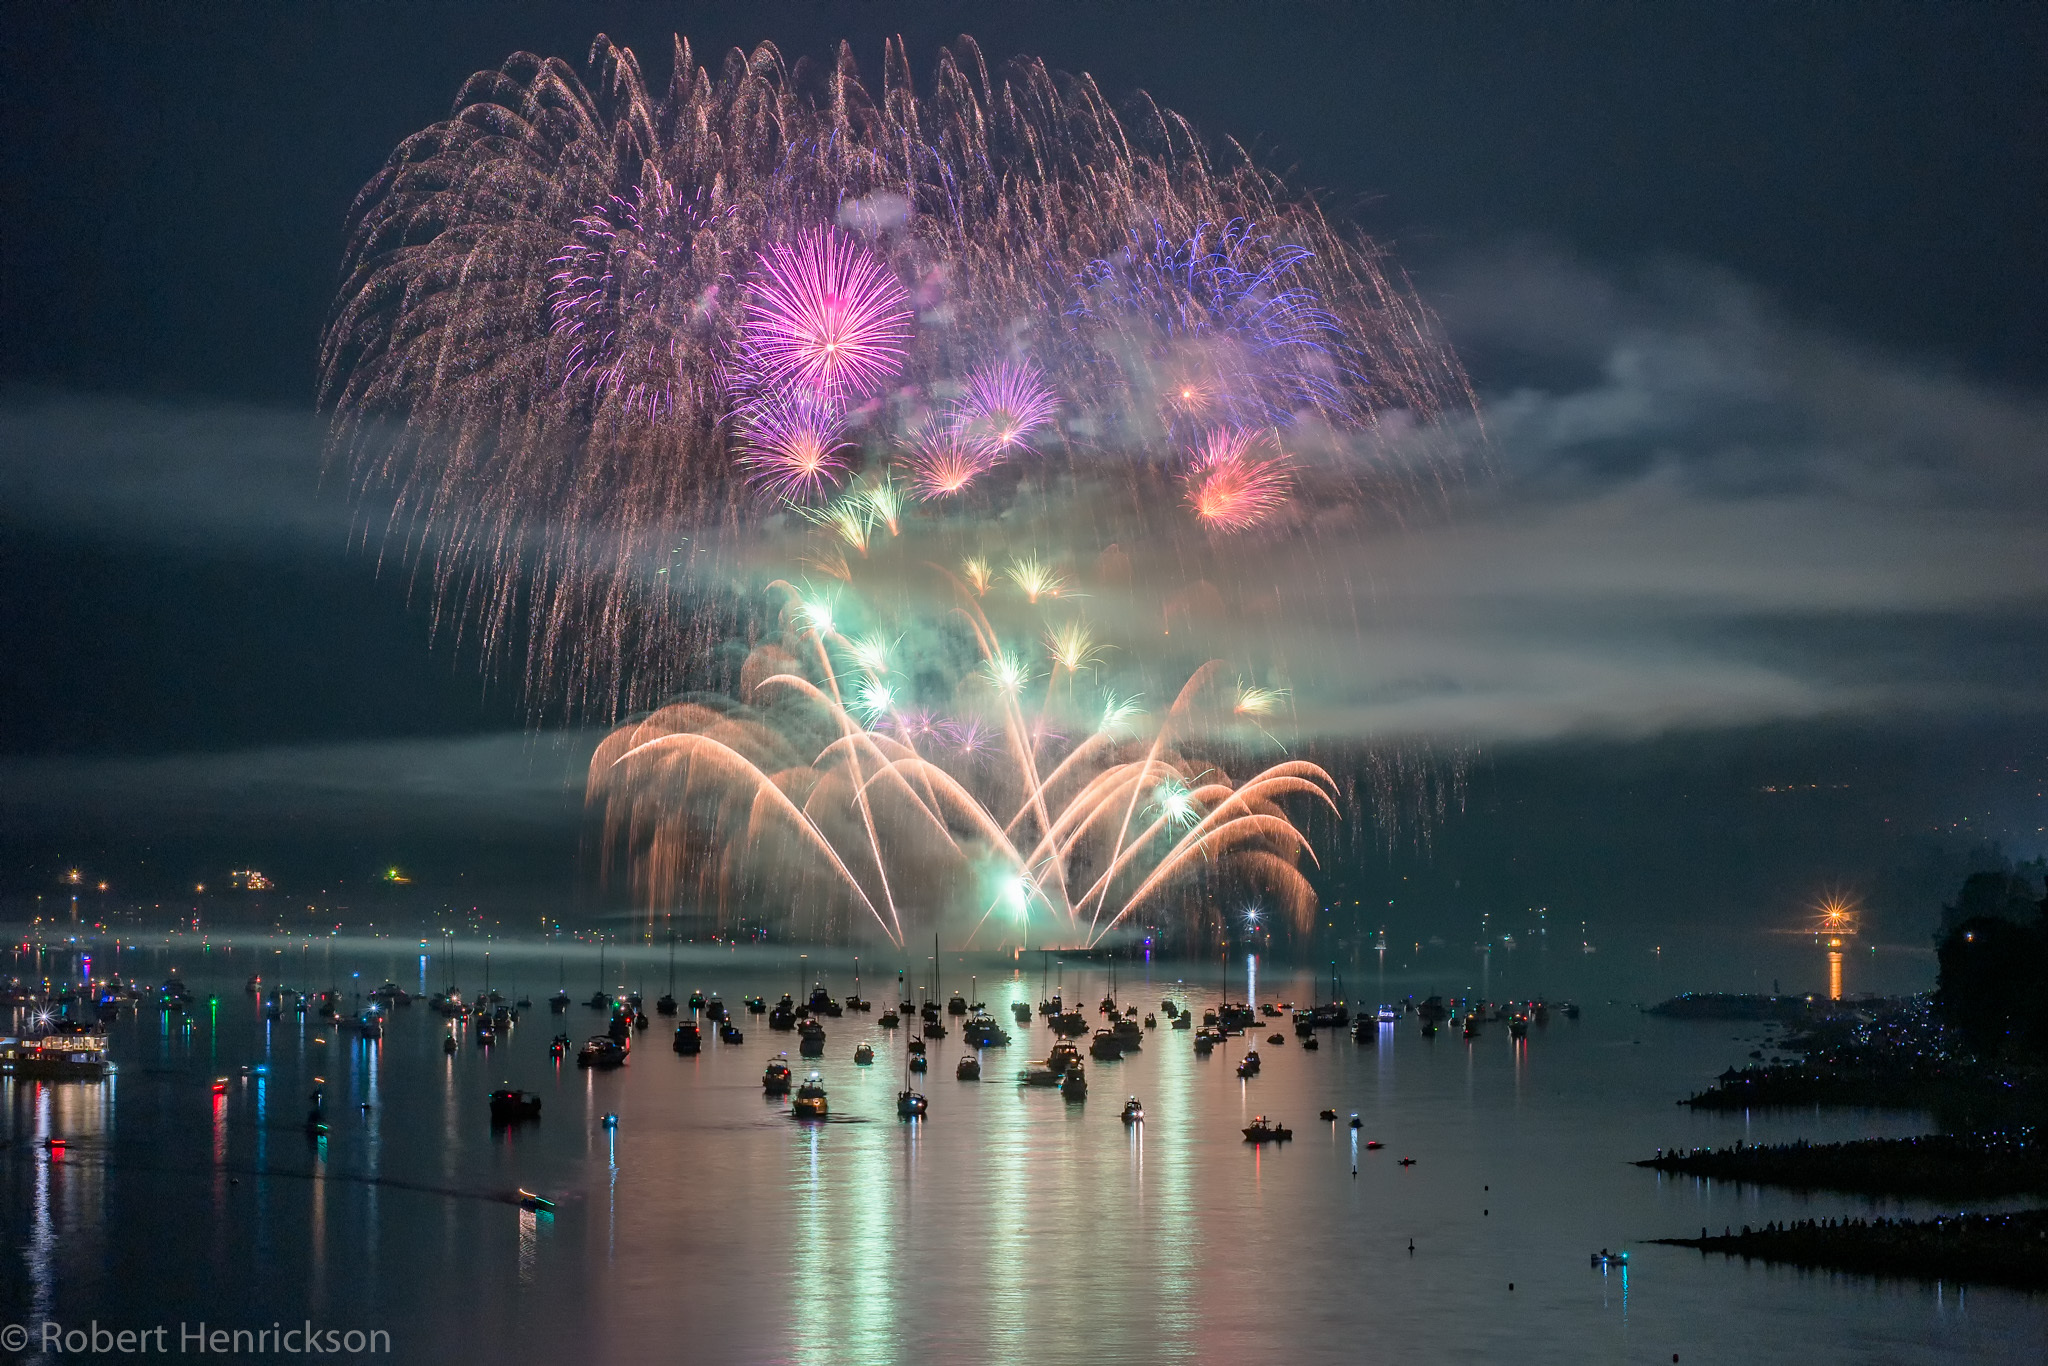 Boat Colorful Fireworks Night Ocean Sea Vancouver 2048x1366